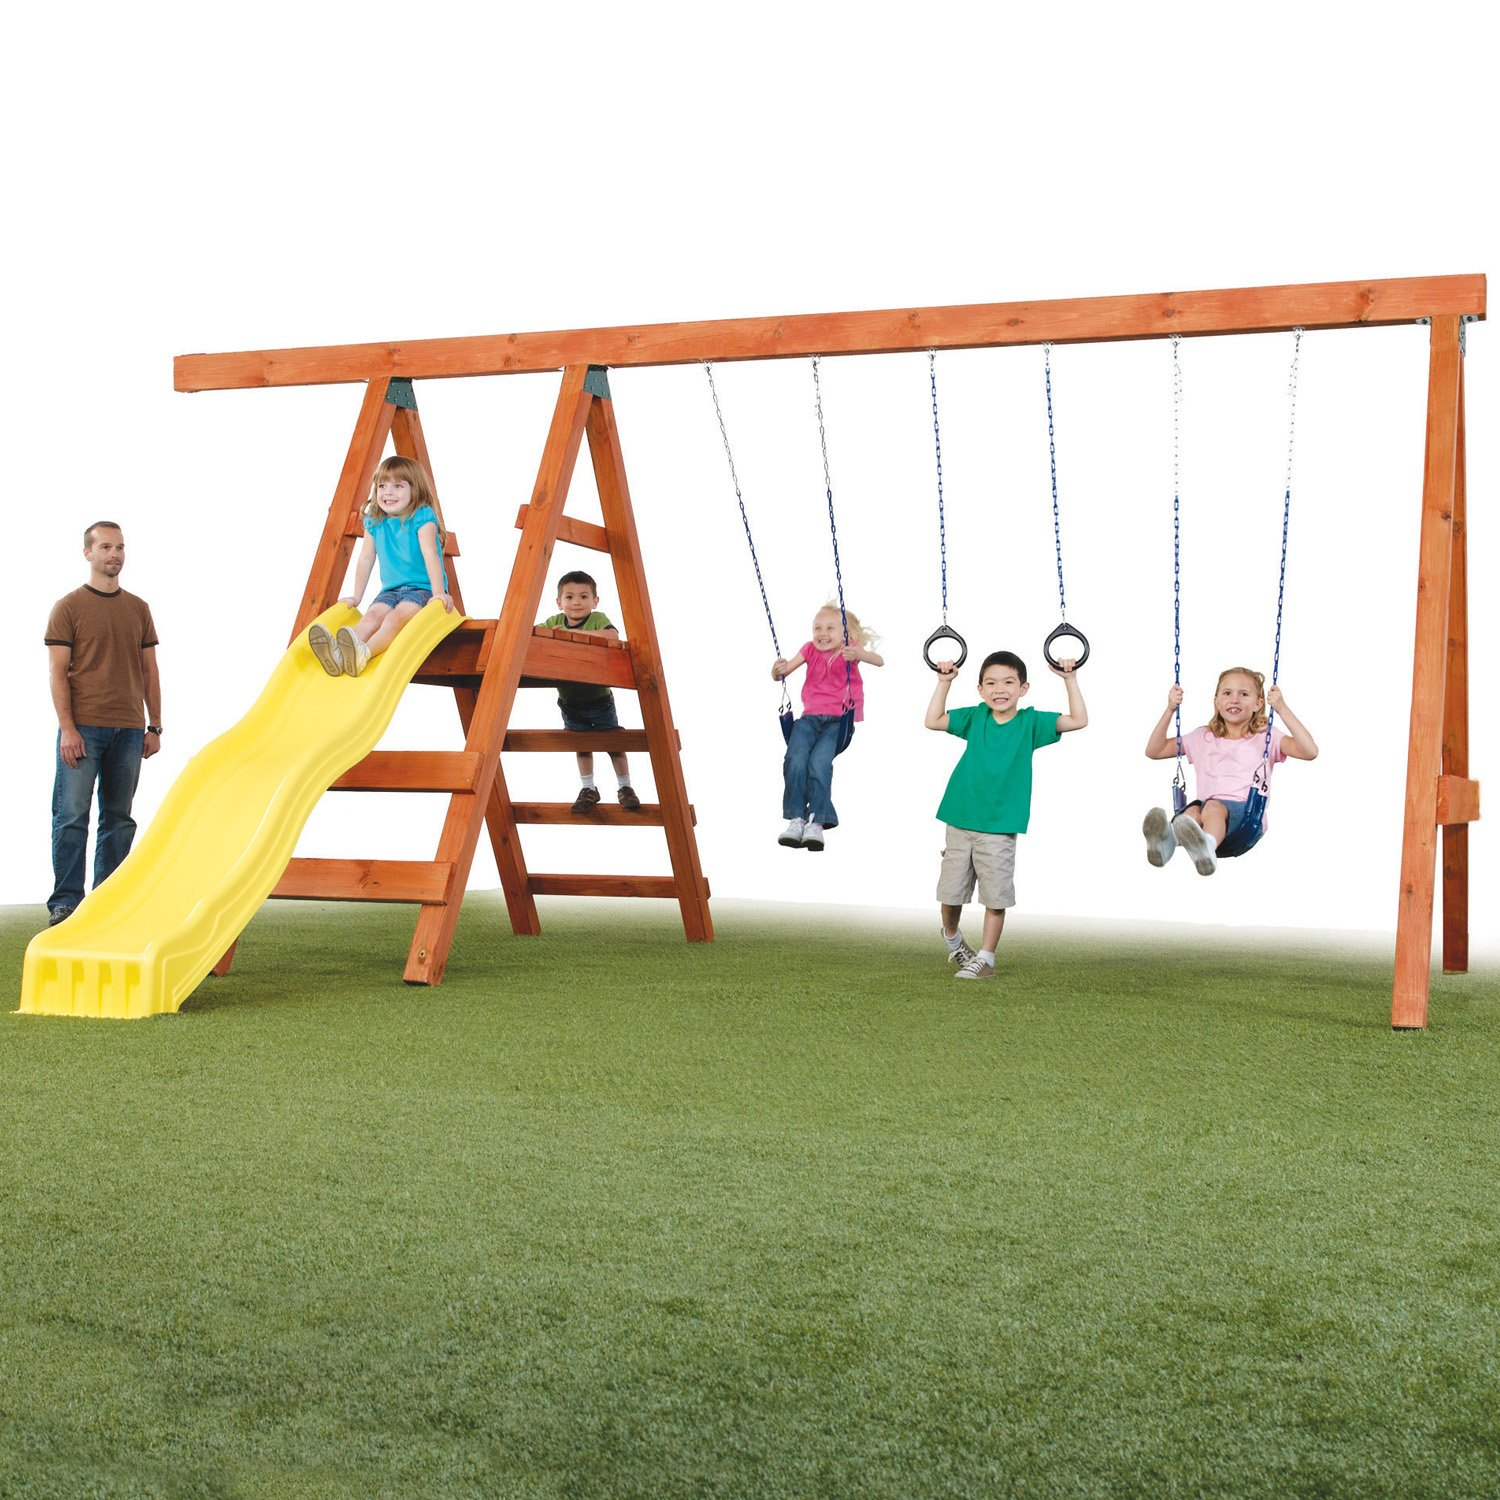 Swing set playground slide wooden kit outdoor backyard for Swing set frame only